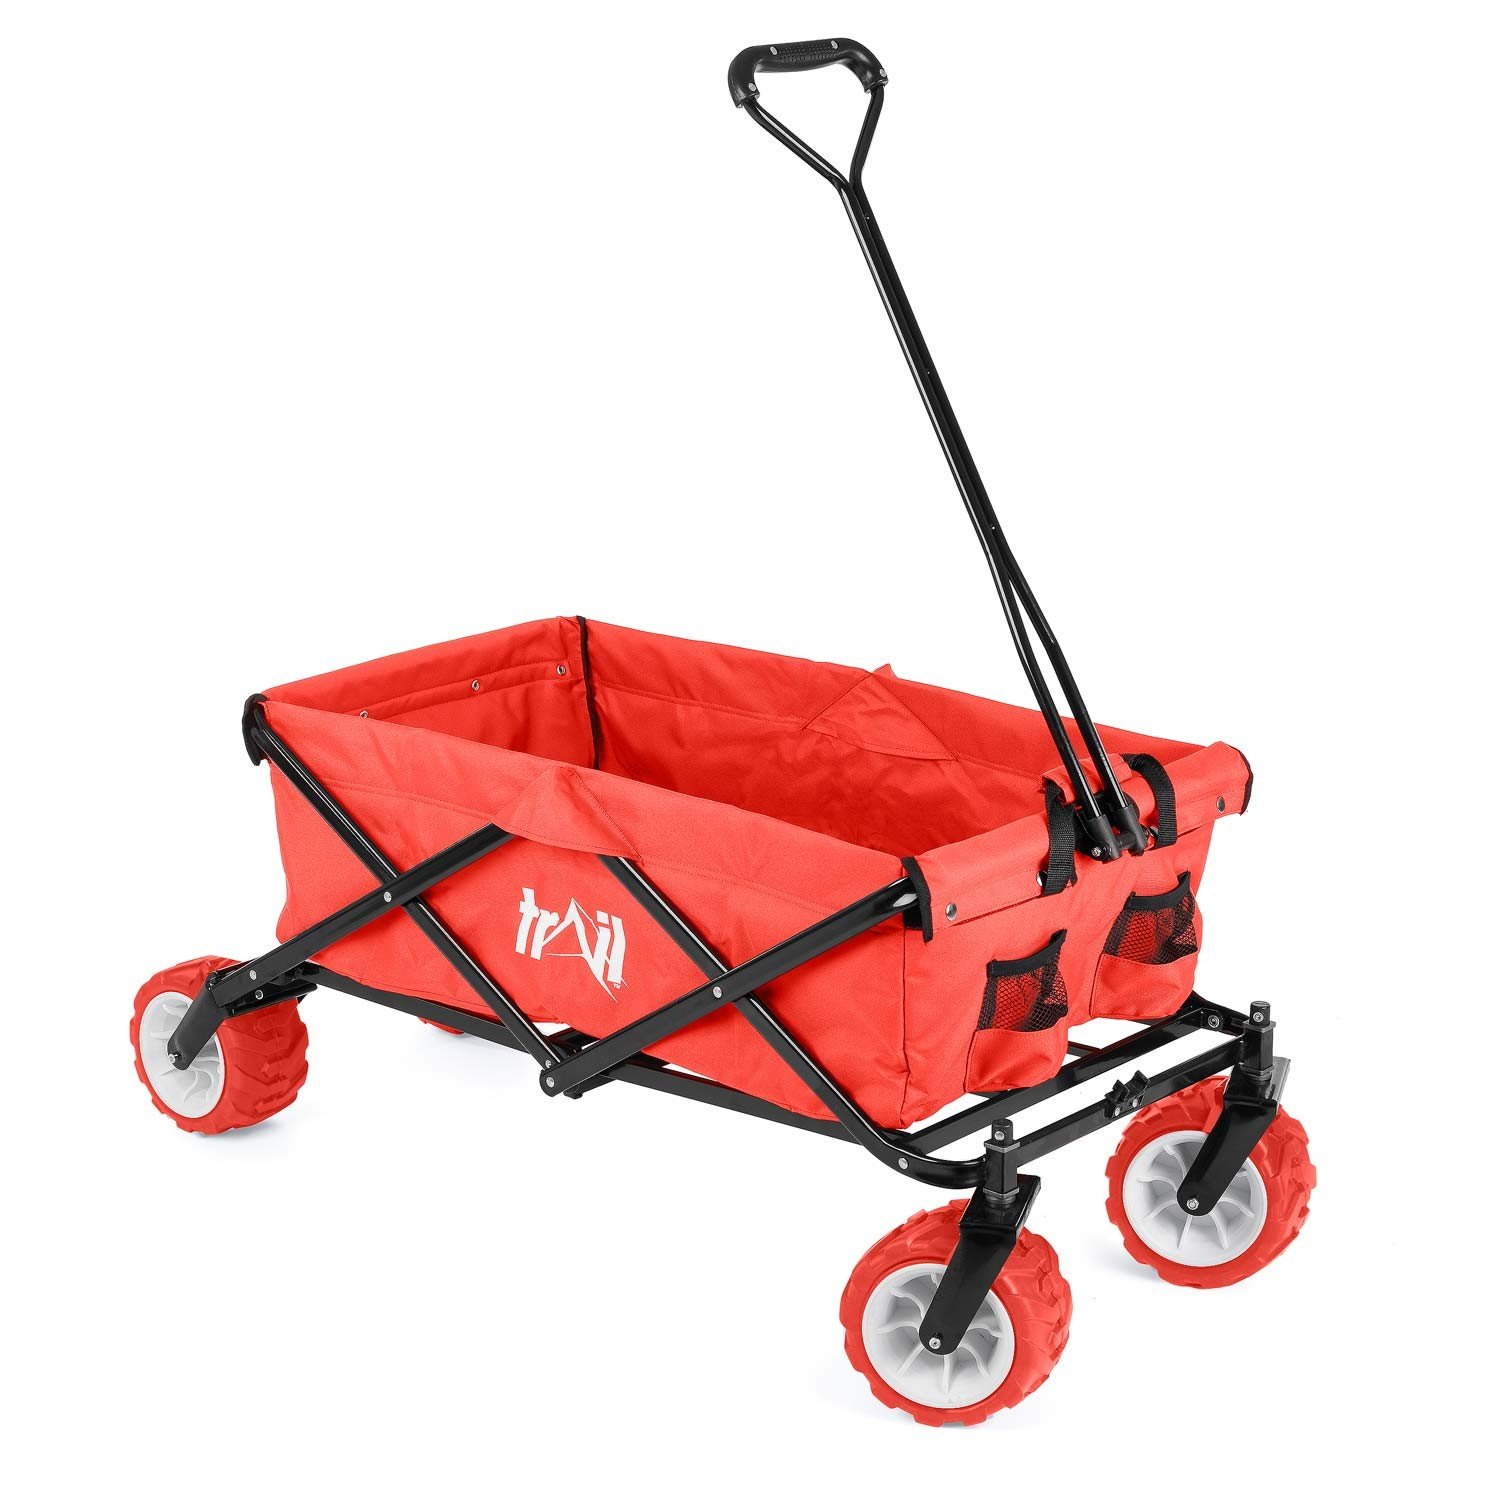 Collapsible Portable Camping Wagon Trolley Folding Wheeled Festival Carry Cart Trail